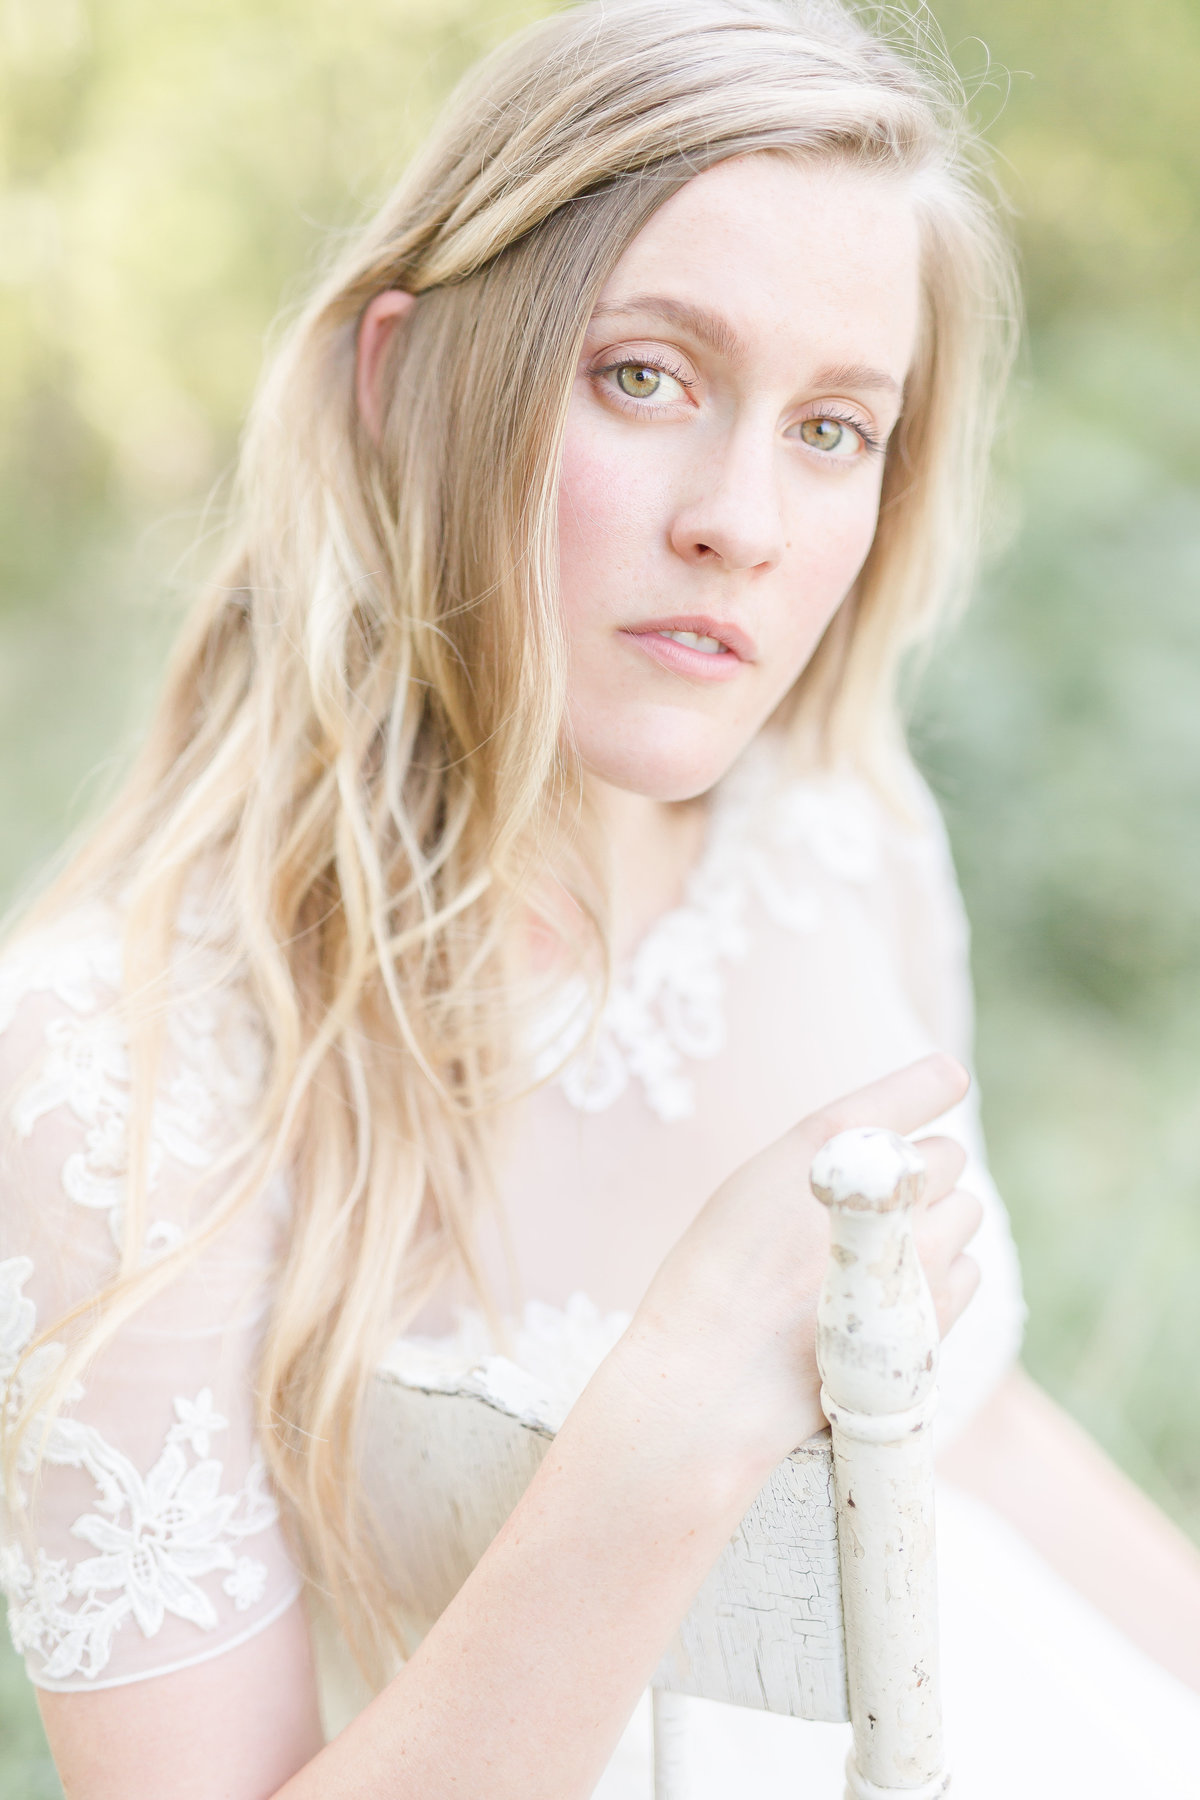 Kailey - Styled Shoot - New Edits-122